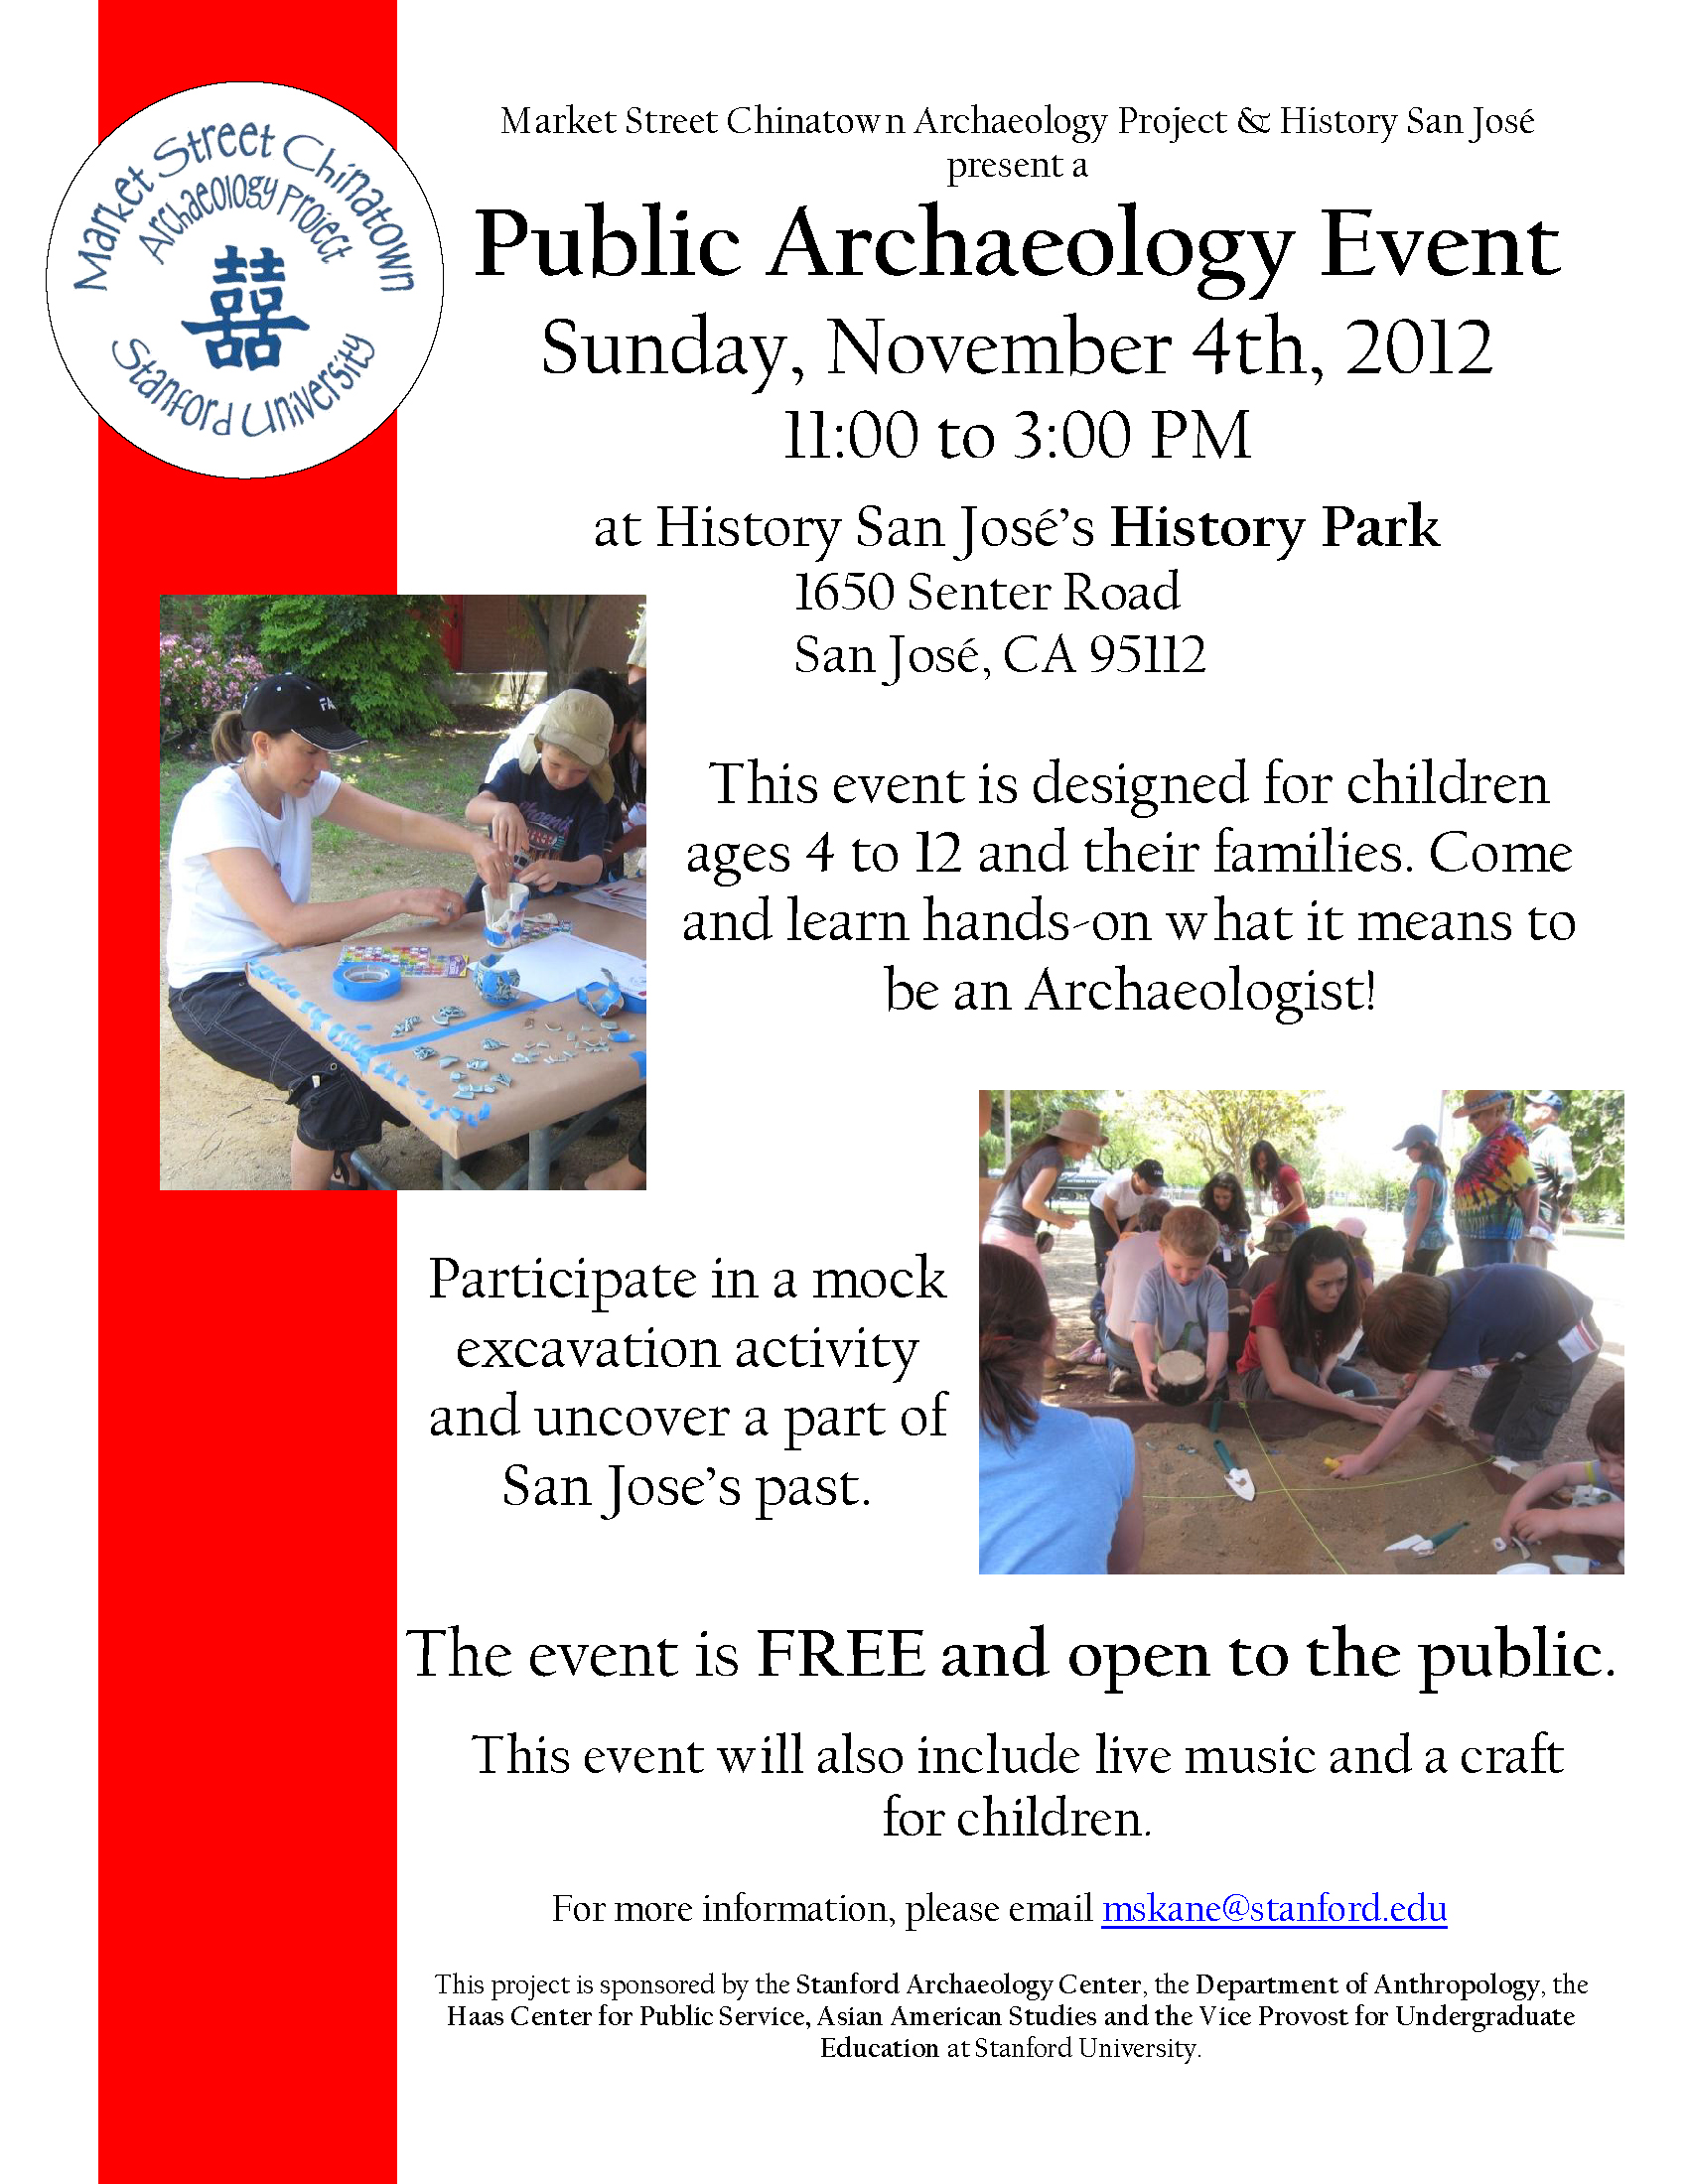 Sunday November 4th Free Public Archaeology Event For